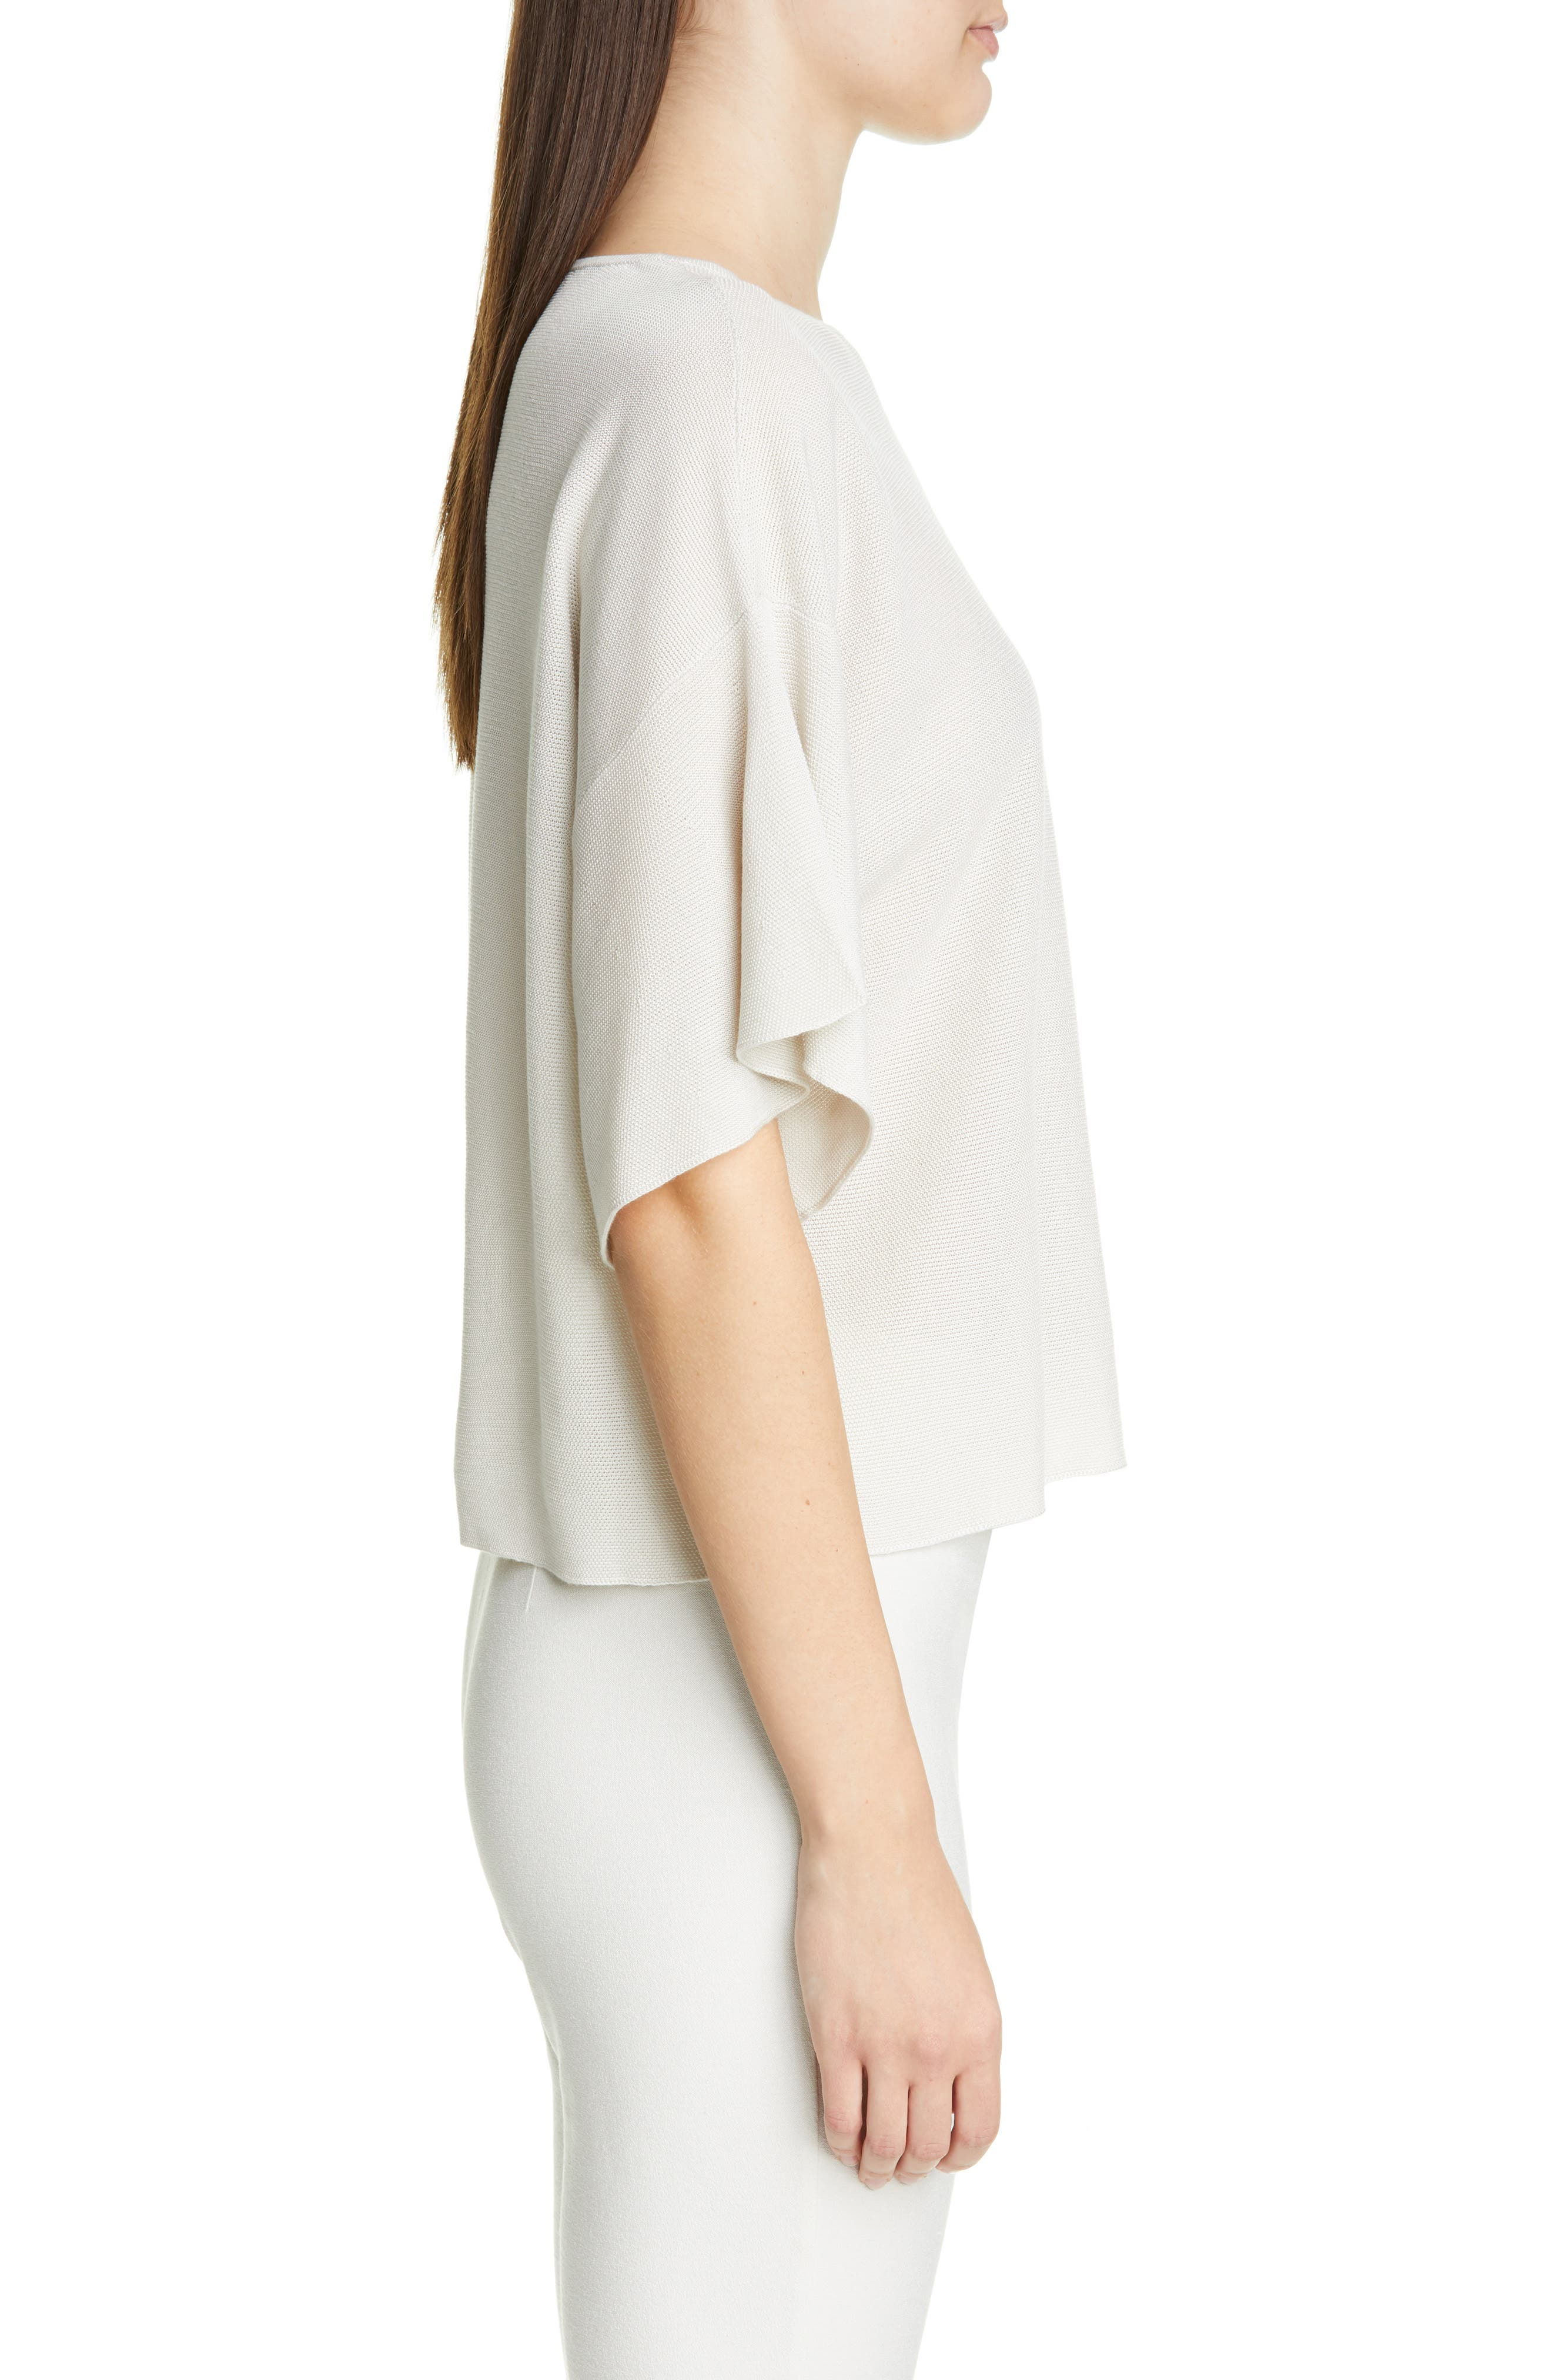 EILEEN FISHER, Elbow Sleeve Top, Alternate thumbnail 3, color, 100